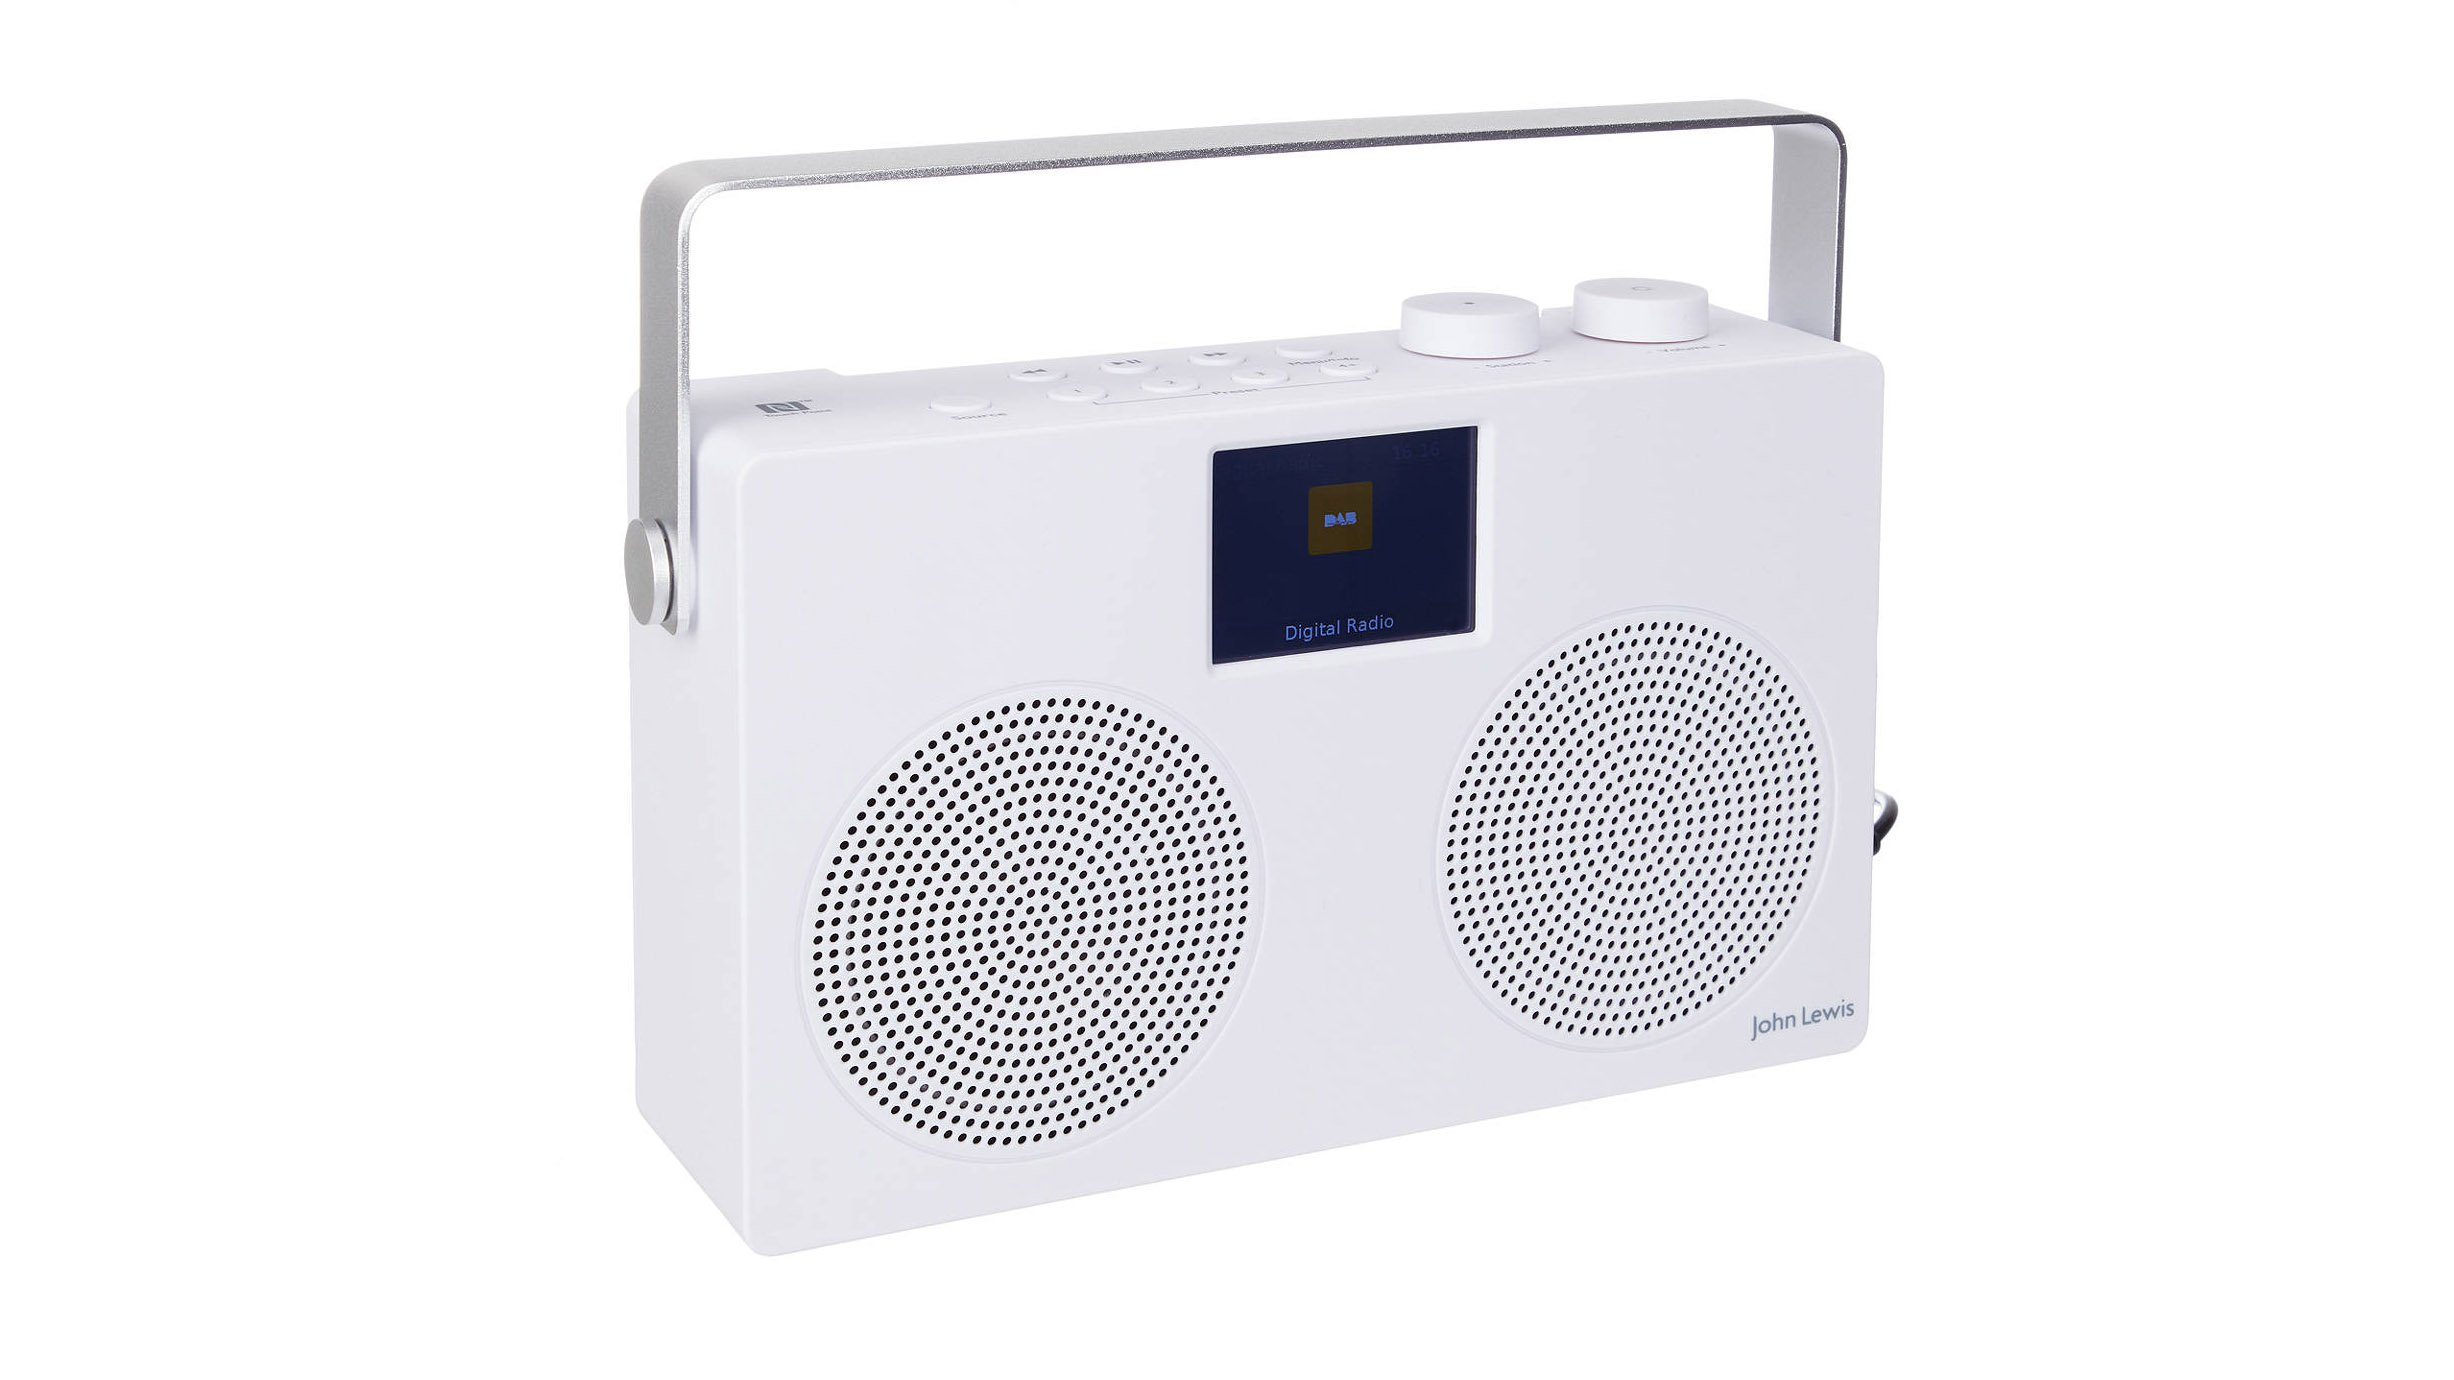 Best Dab Radio 2018 The Best Digital Radios You Can Buy From 29